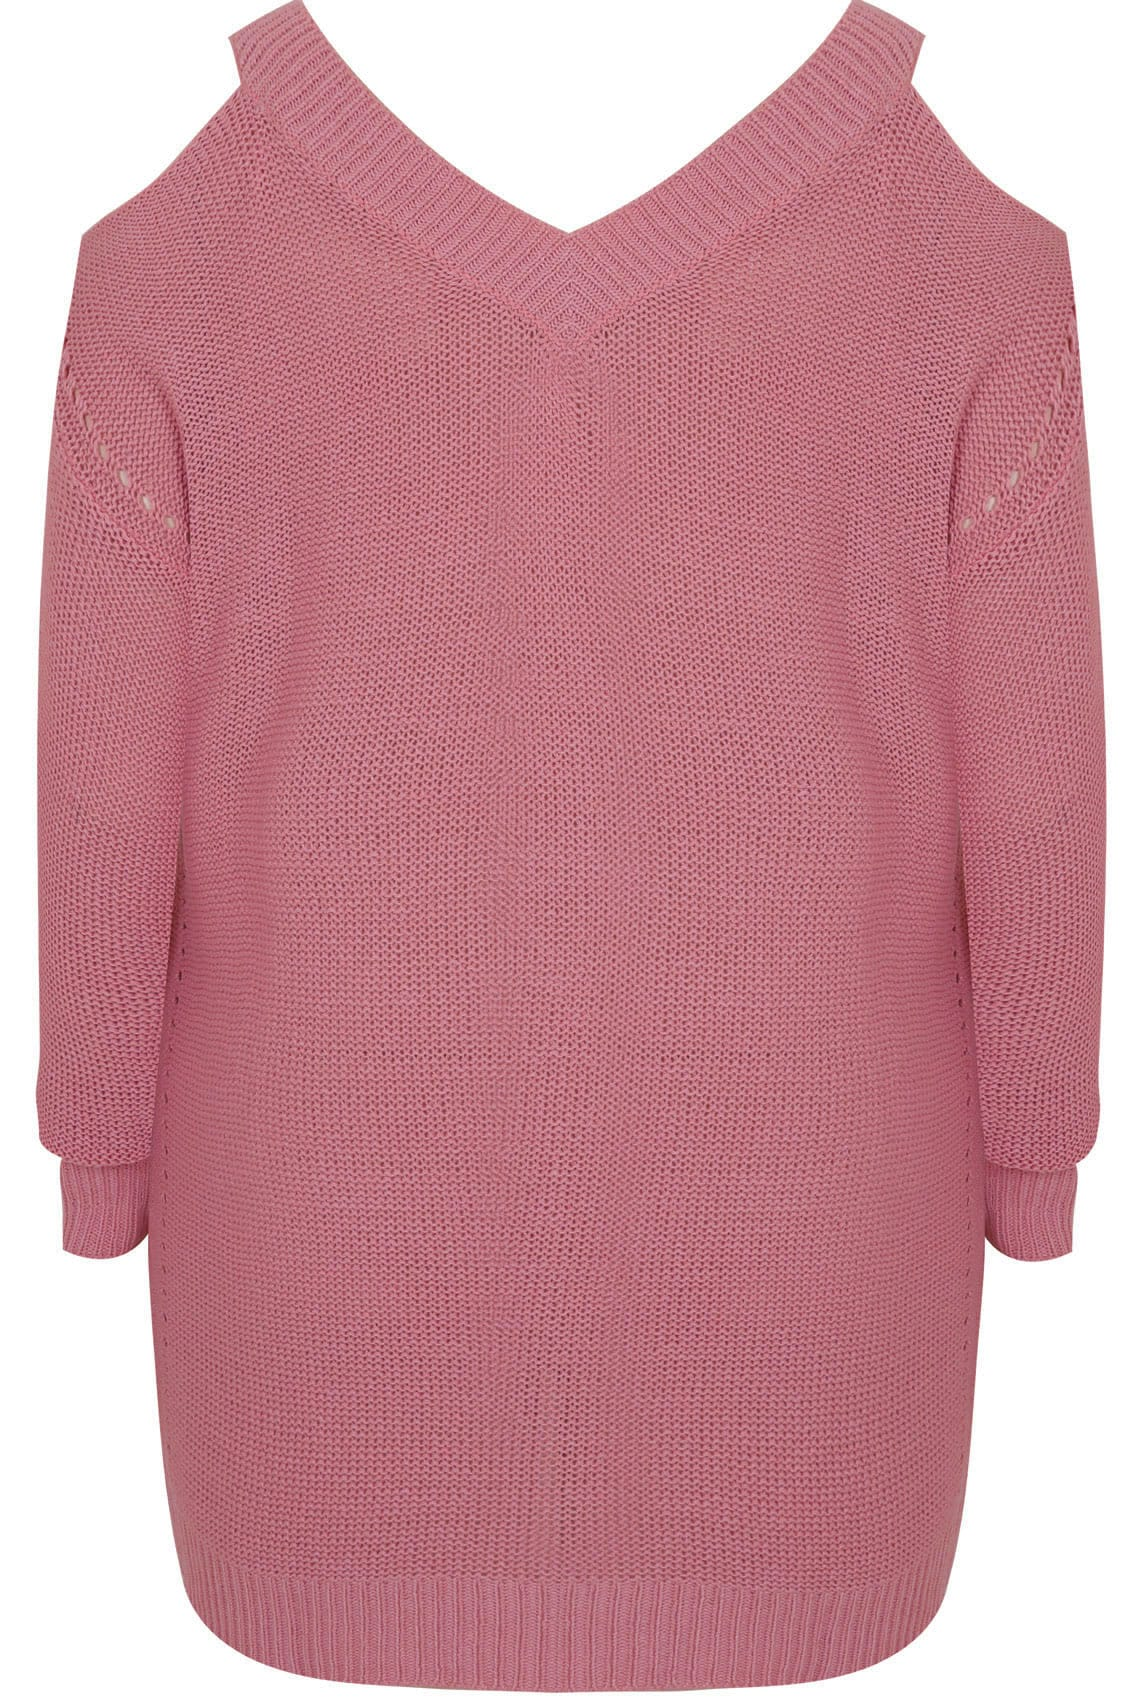 Dusky Pink Knitted Cold Shoulder Jumper With Pointelle Detail ...